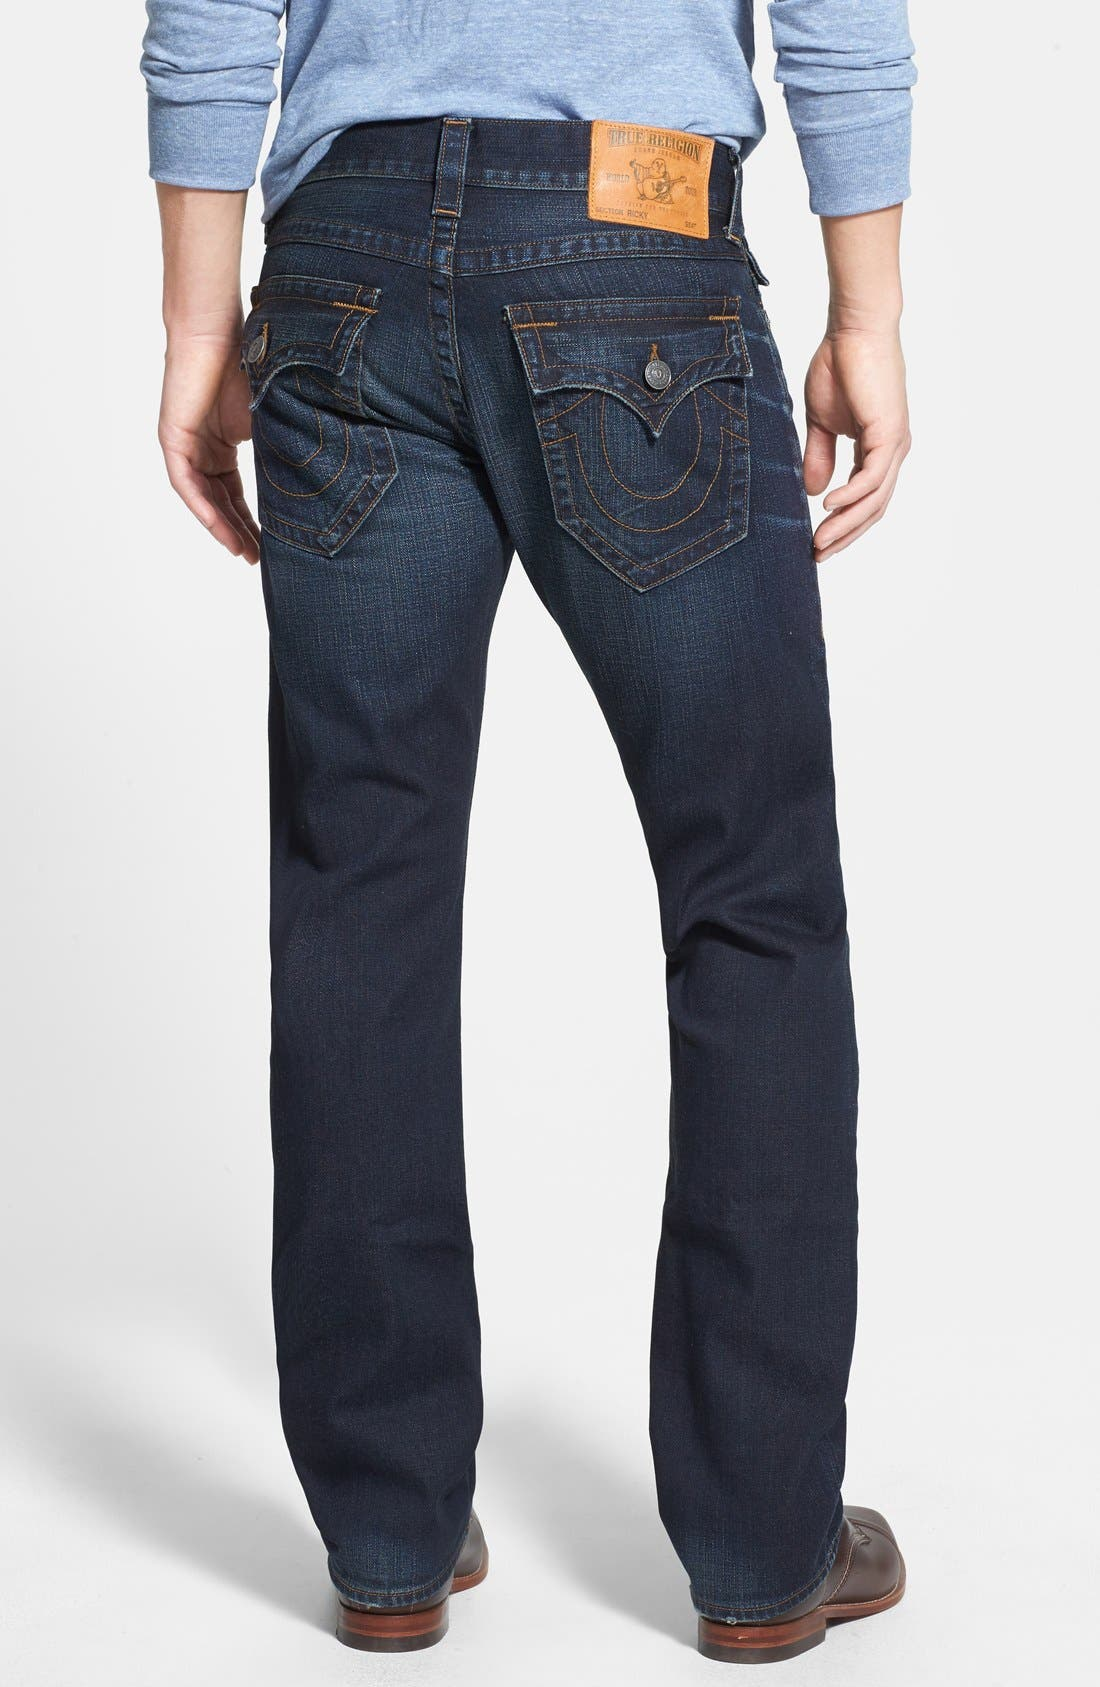 Alternate Image 1 Selected - True Religion Brand Jeans 'Ricky' Relaxed Fit Jeans (Base Notes Blue)